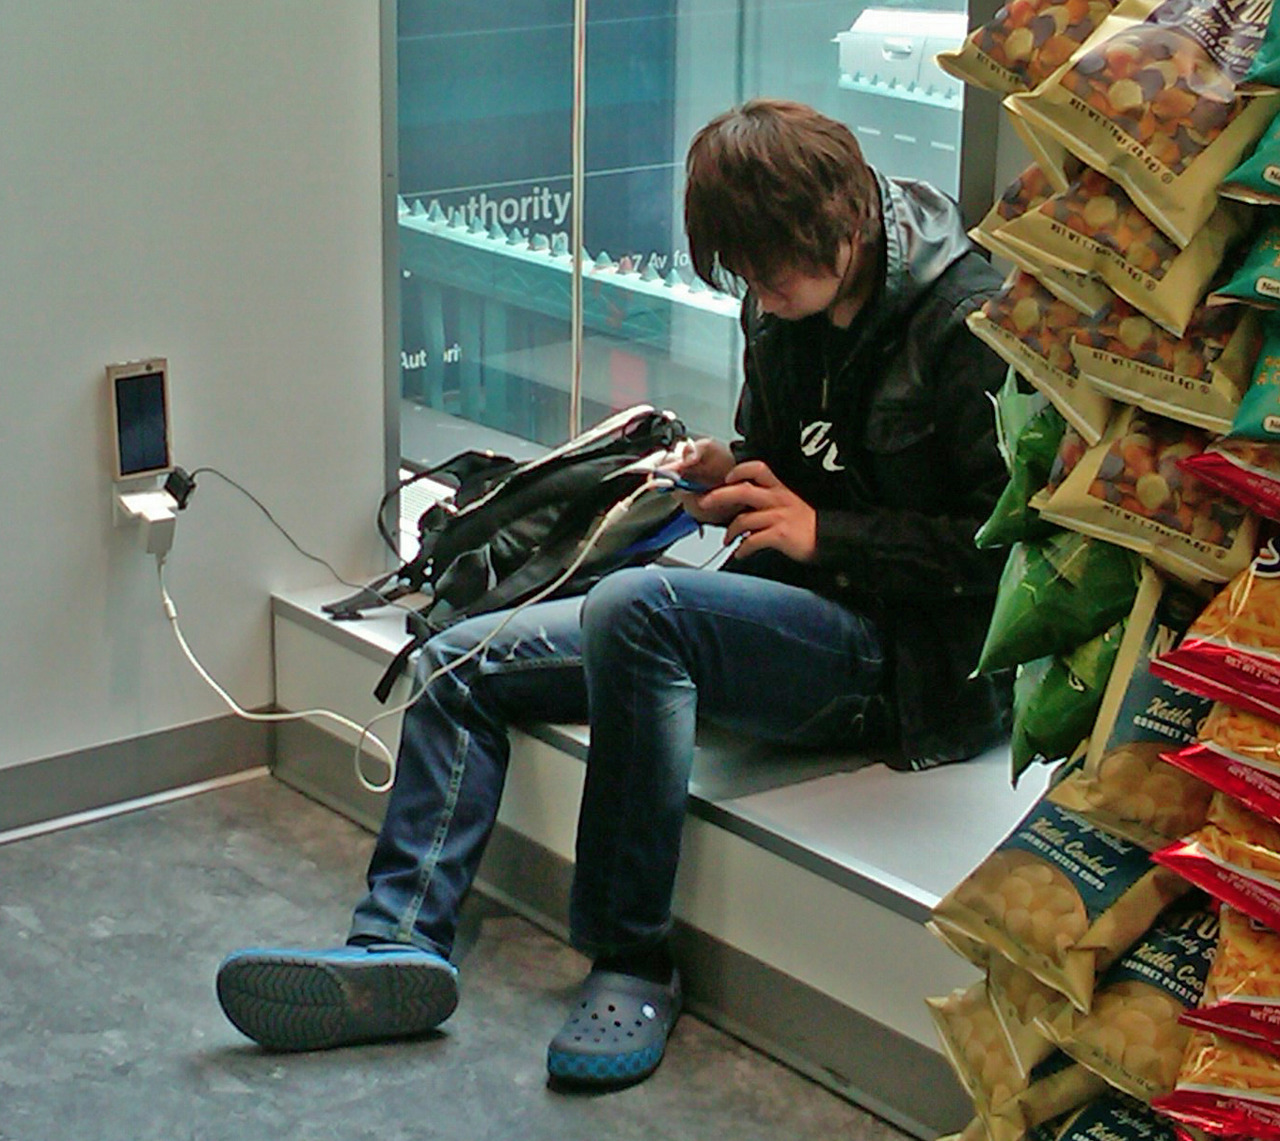 10/31/12 NYC.  Charging at Duane Reade.